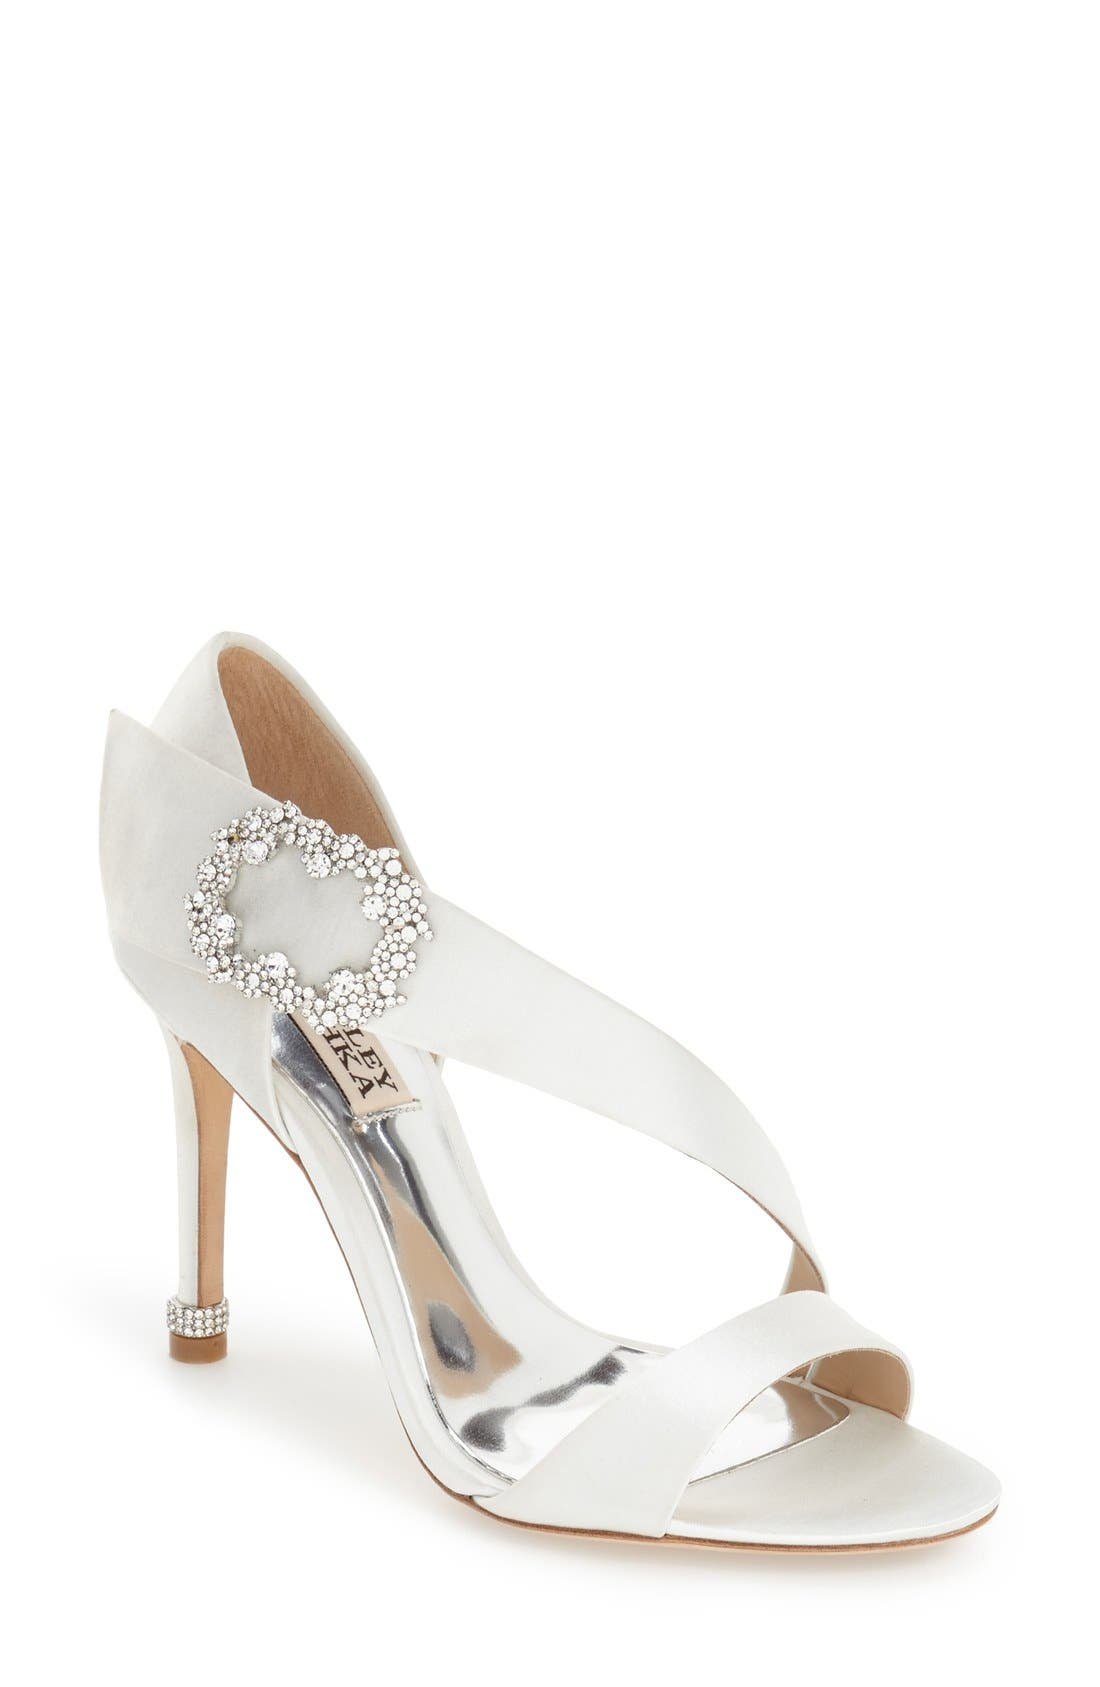 'Night' Crystal Embellished Evening Sandal,                             Main thumbnail 1, color,                             142